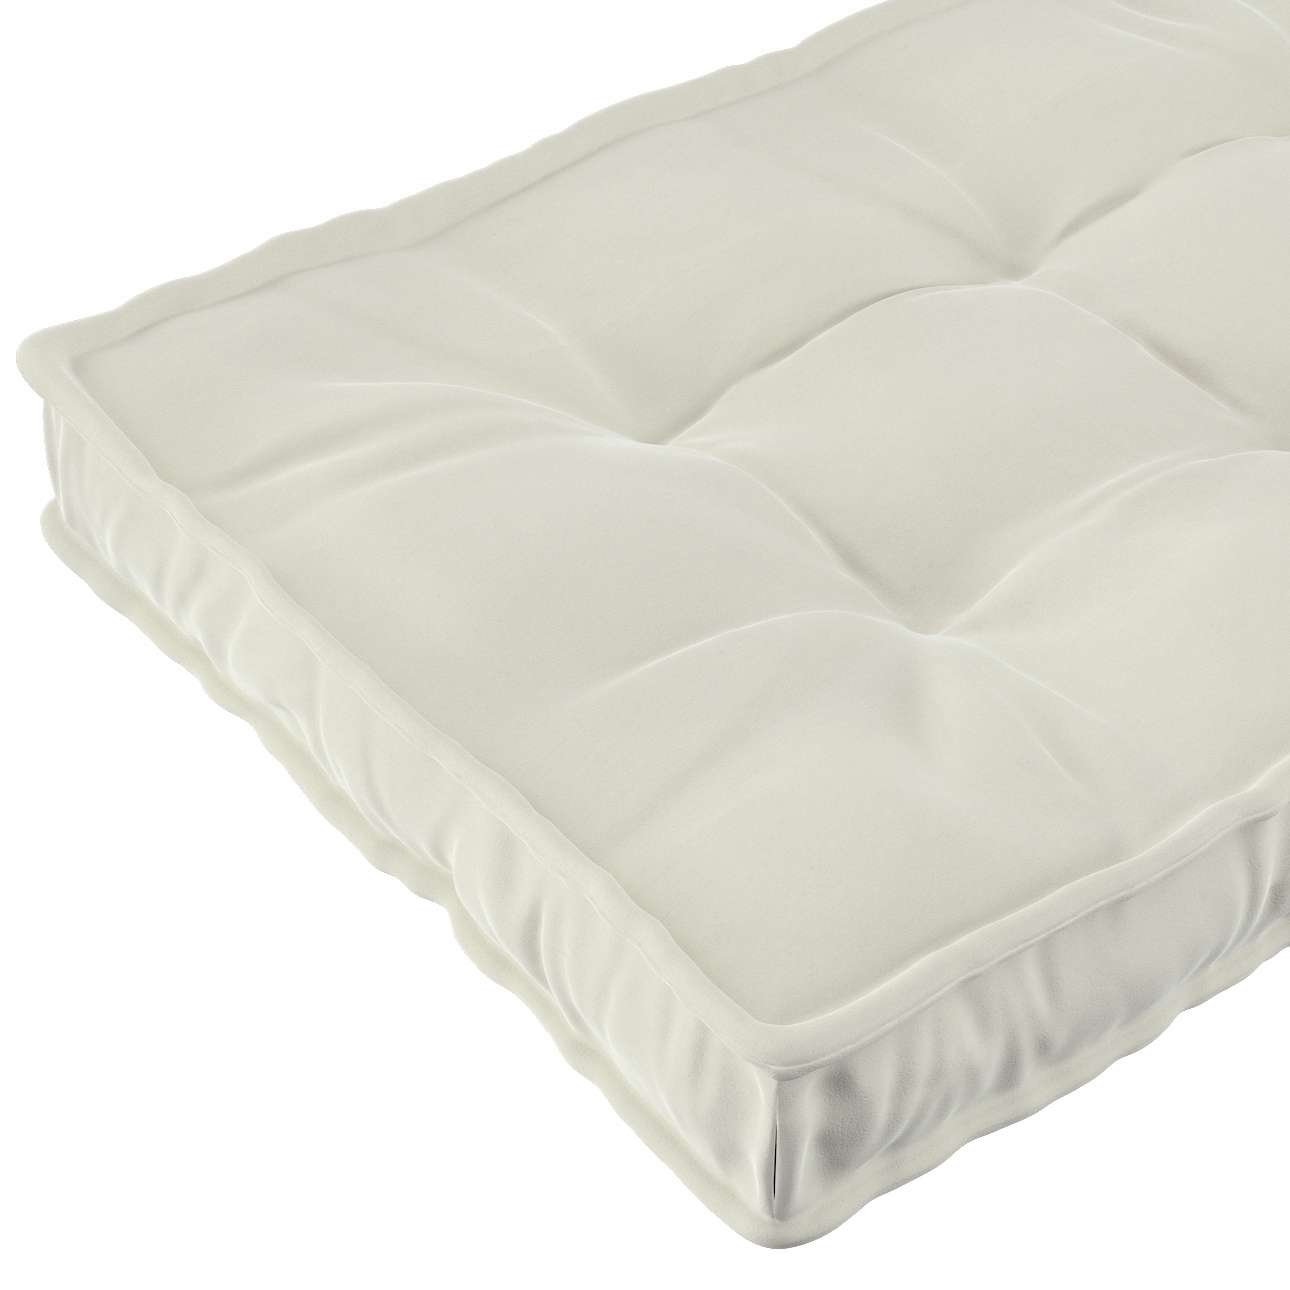 French mattress in collection Posh Velvet, fabric: 704-10